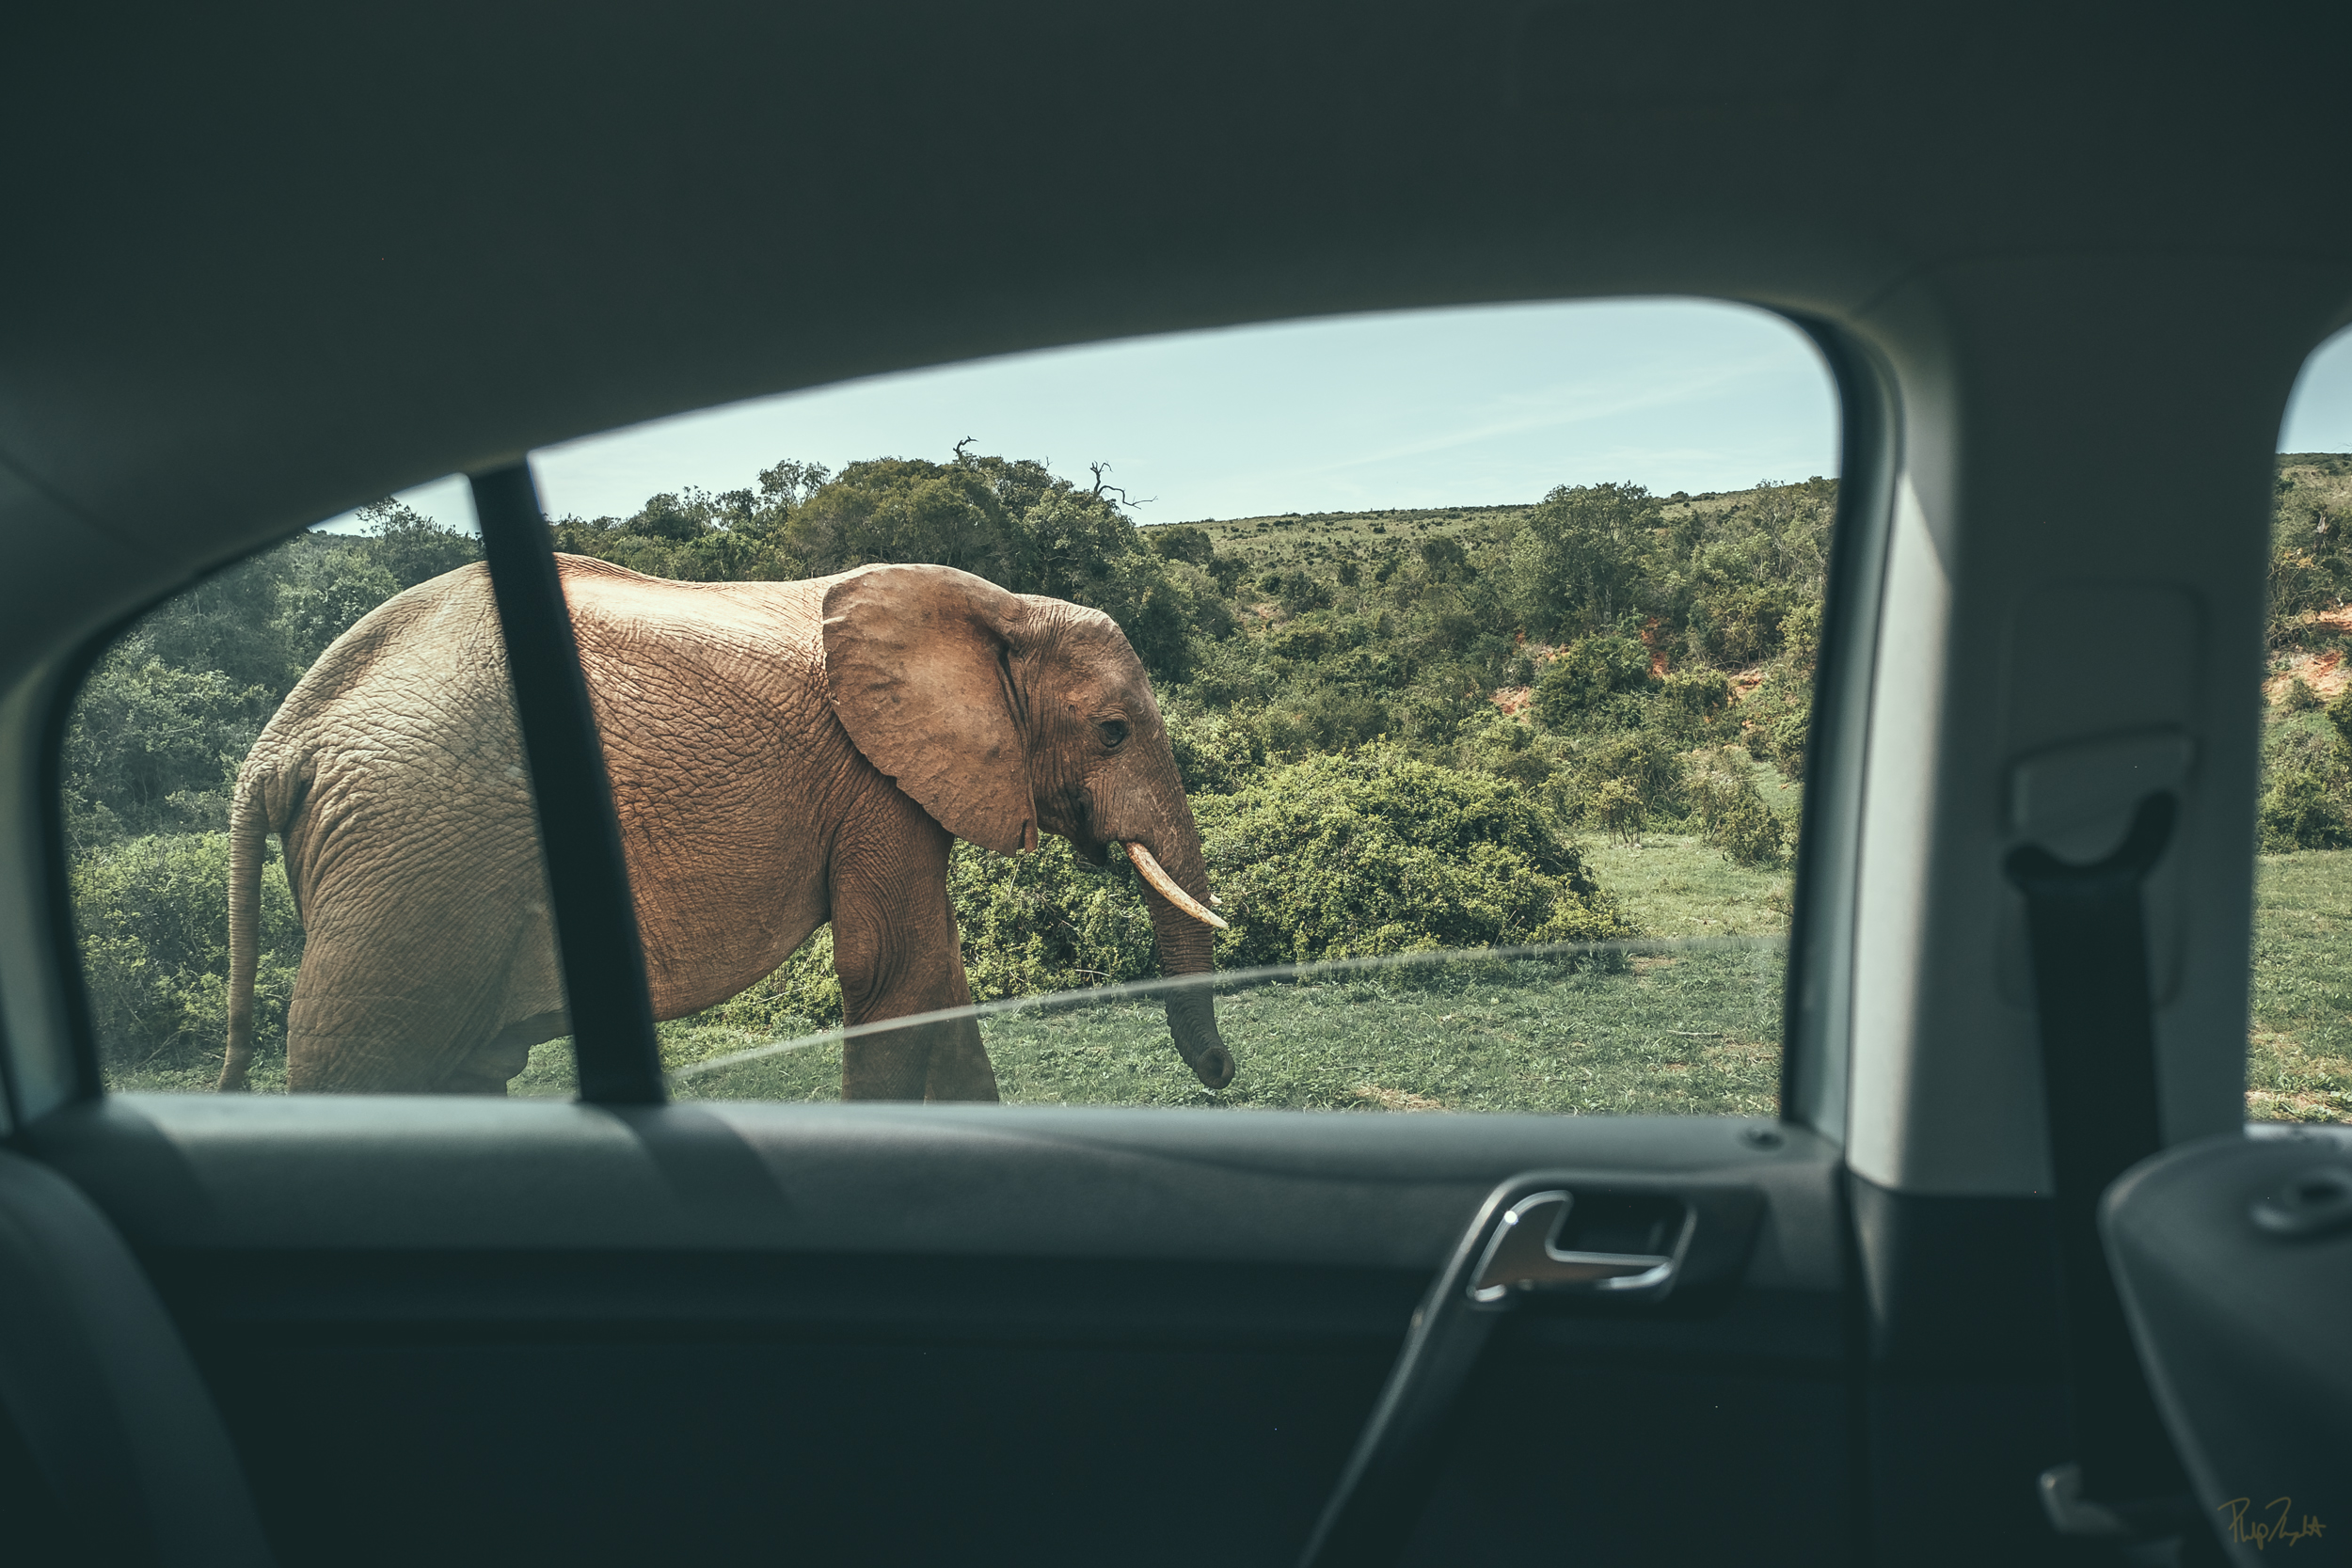 CO-EXISTENCE   This elephant walked along side our car like it had done so to countless other cars. I was in disbelief with the level of comfort it had with people. In South Africa it's possible for wildlife and humans to live together in peace.    BUY NOW